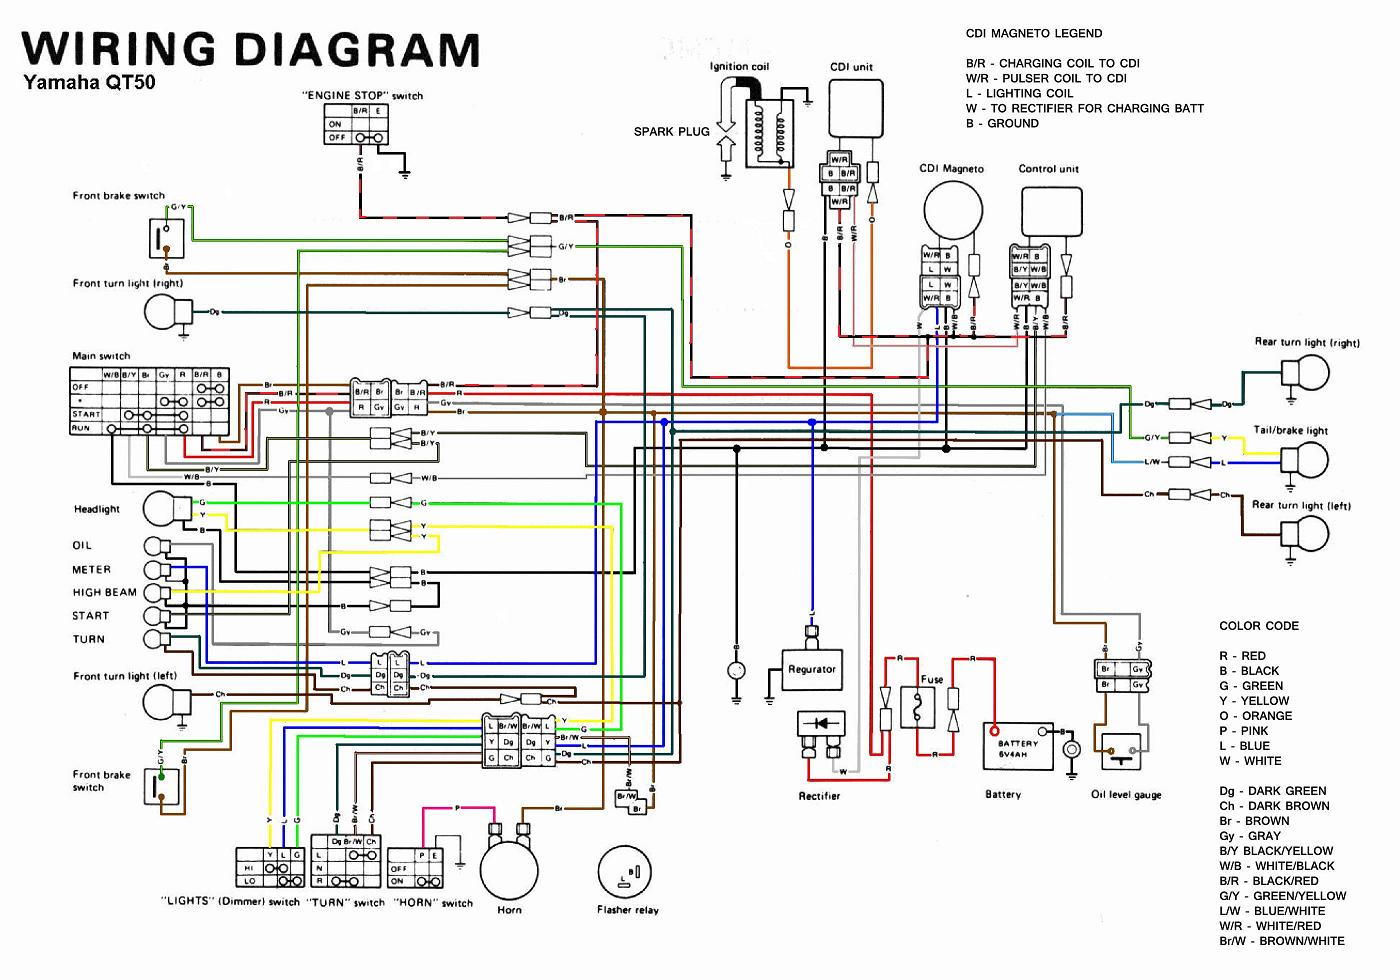 hight resolution of yamaha wiring diagram yamaha wiring diagram detailed schematics diagram yamaha wiring diagram 1987 1100 virago wiring diagram free download